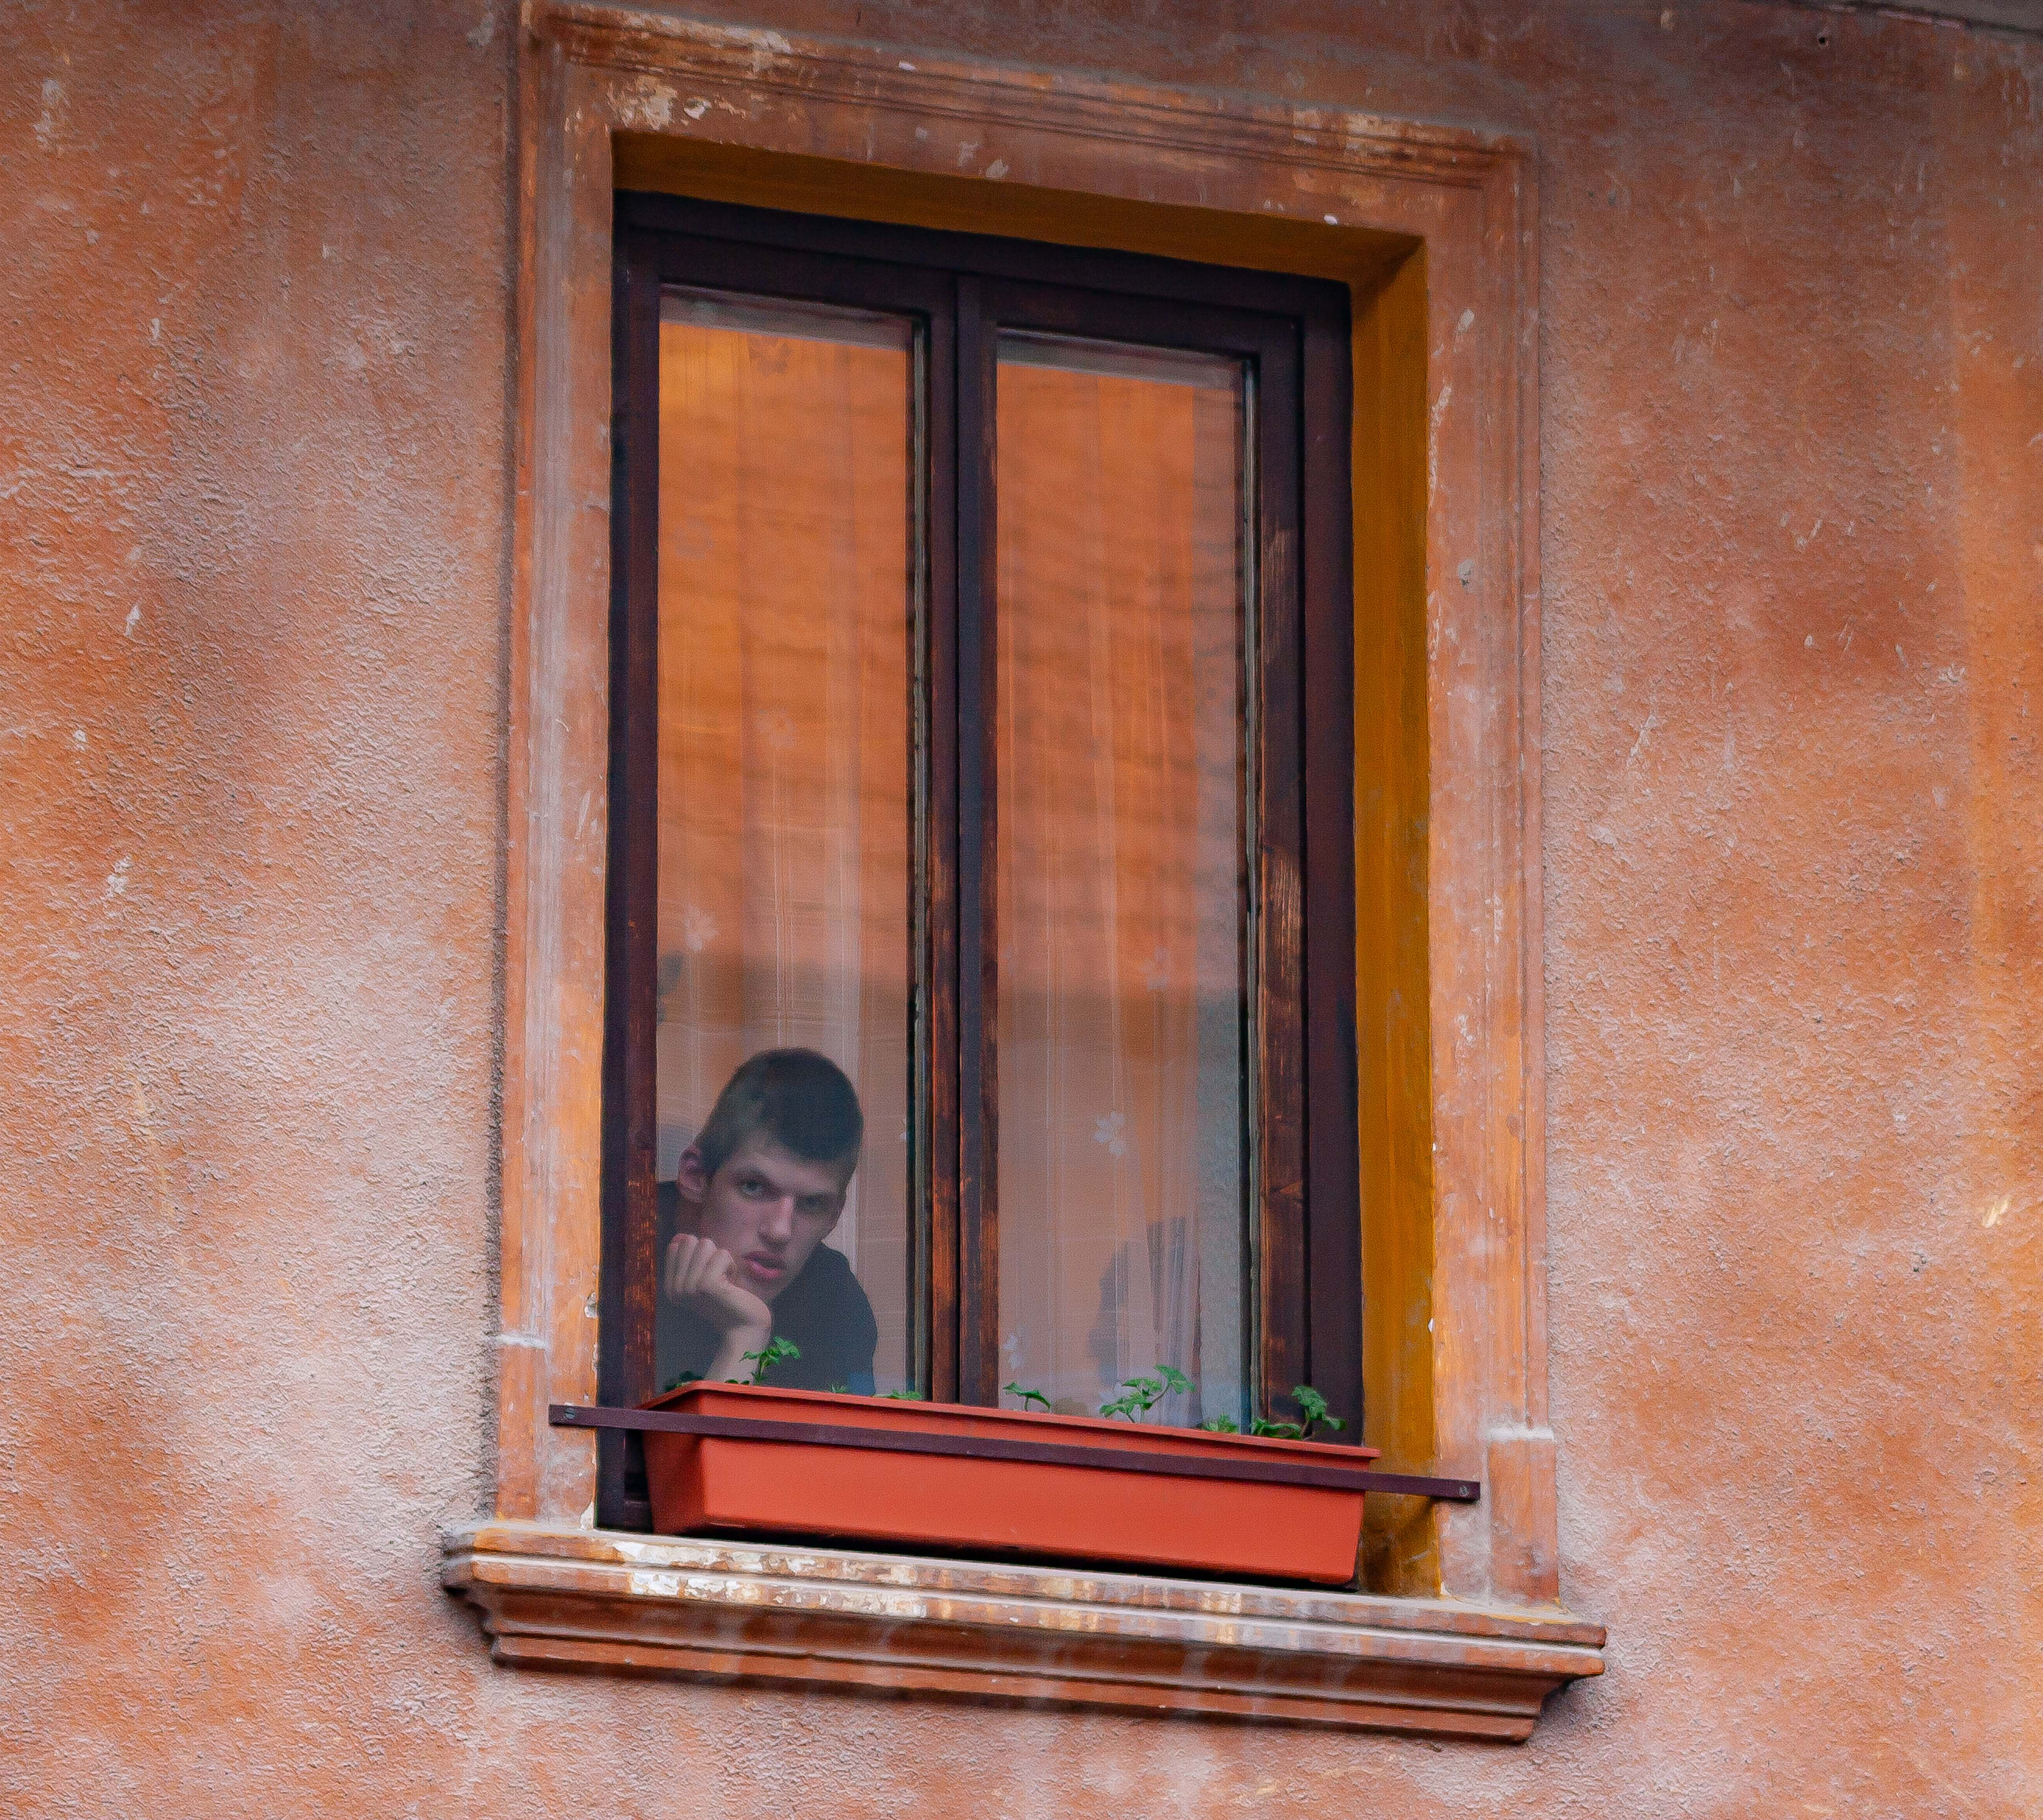 Slovenia, Vitanje Prov, Boy In Window, 2006, IMG 5680